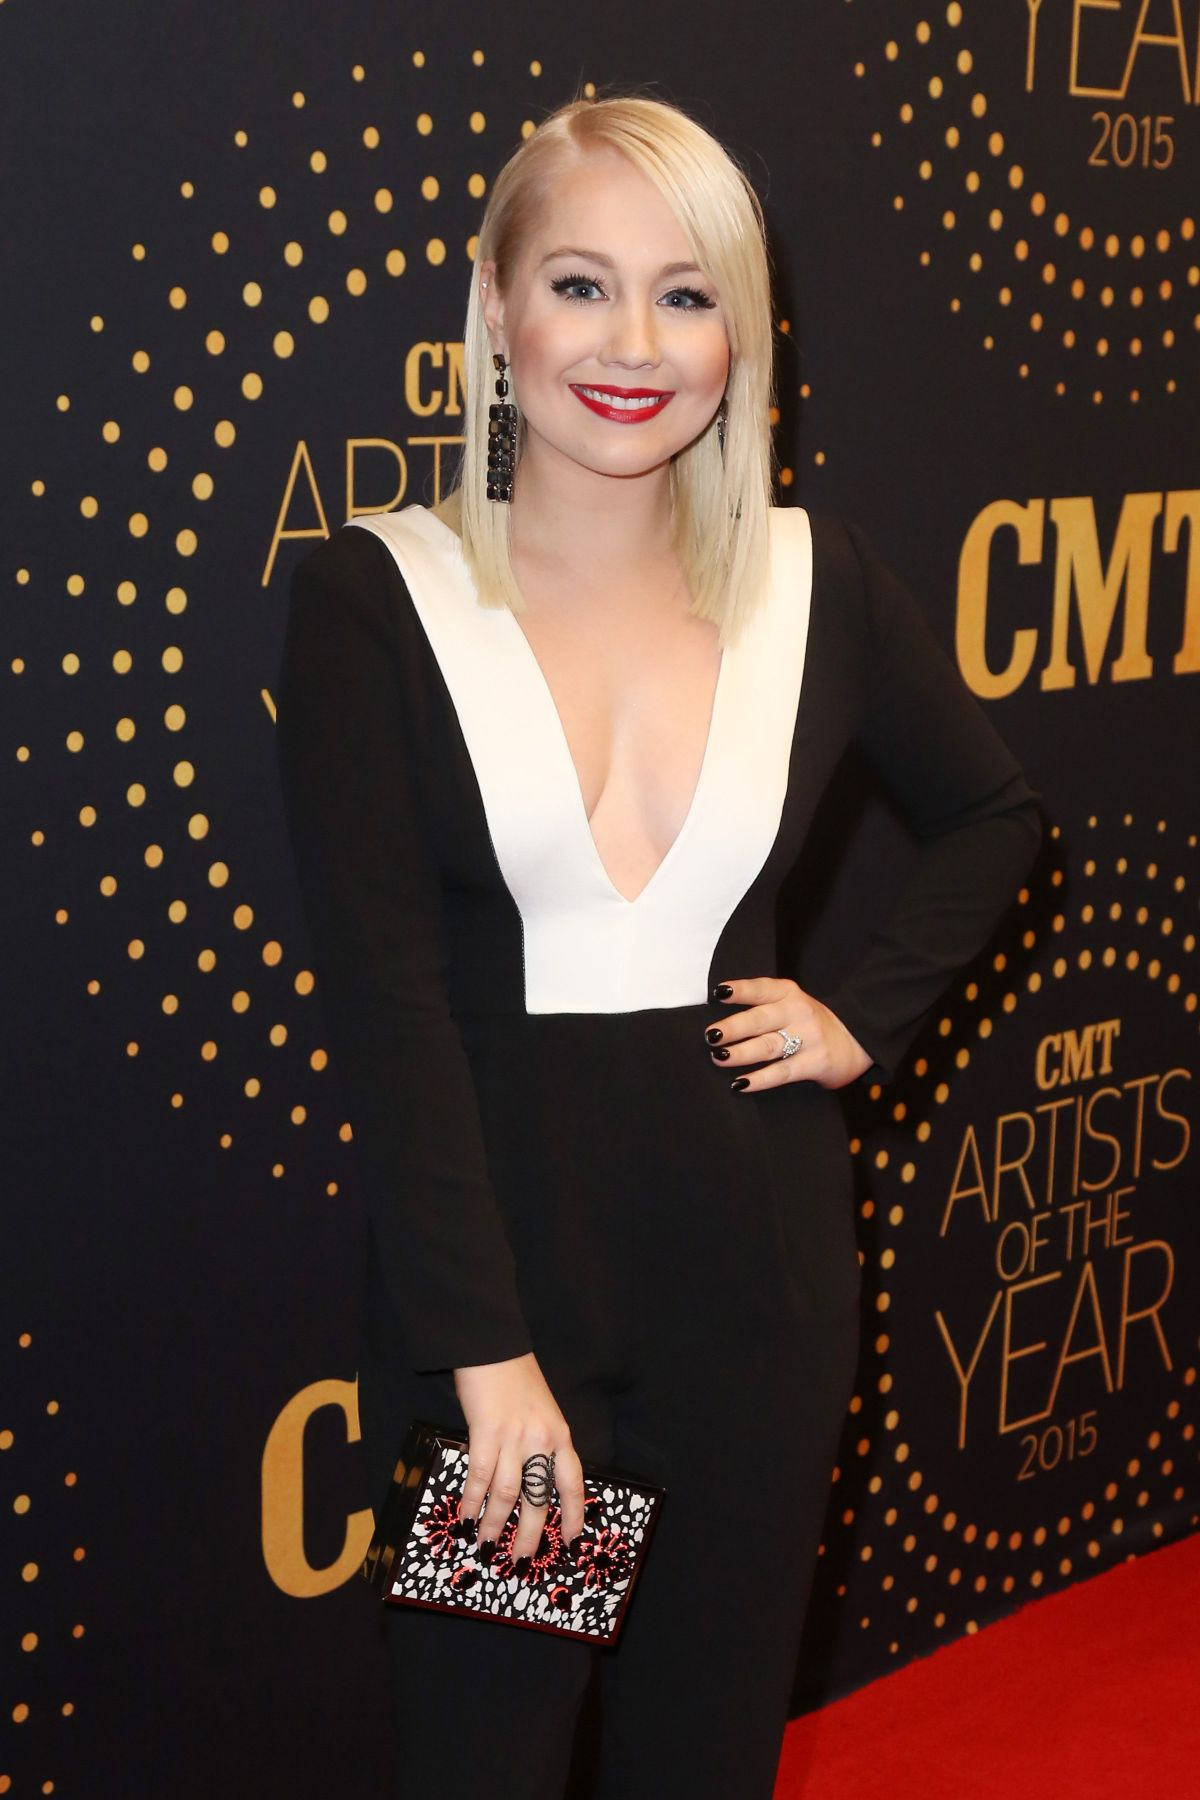 RAELYNN at 2015 CMT Artists of the Year Awards in Nashville 12/02/2015